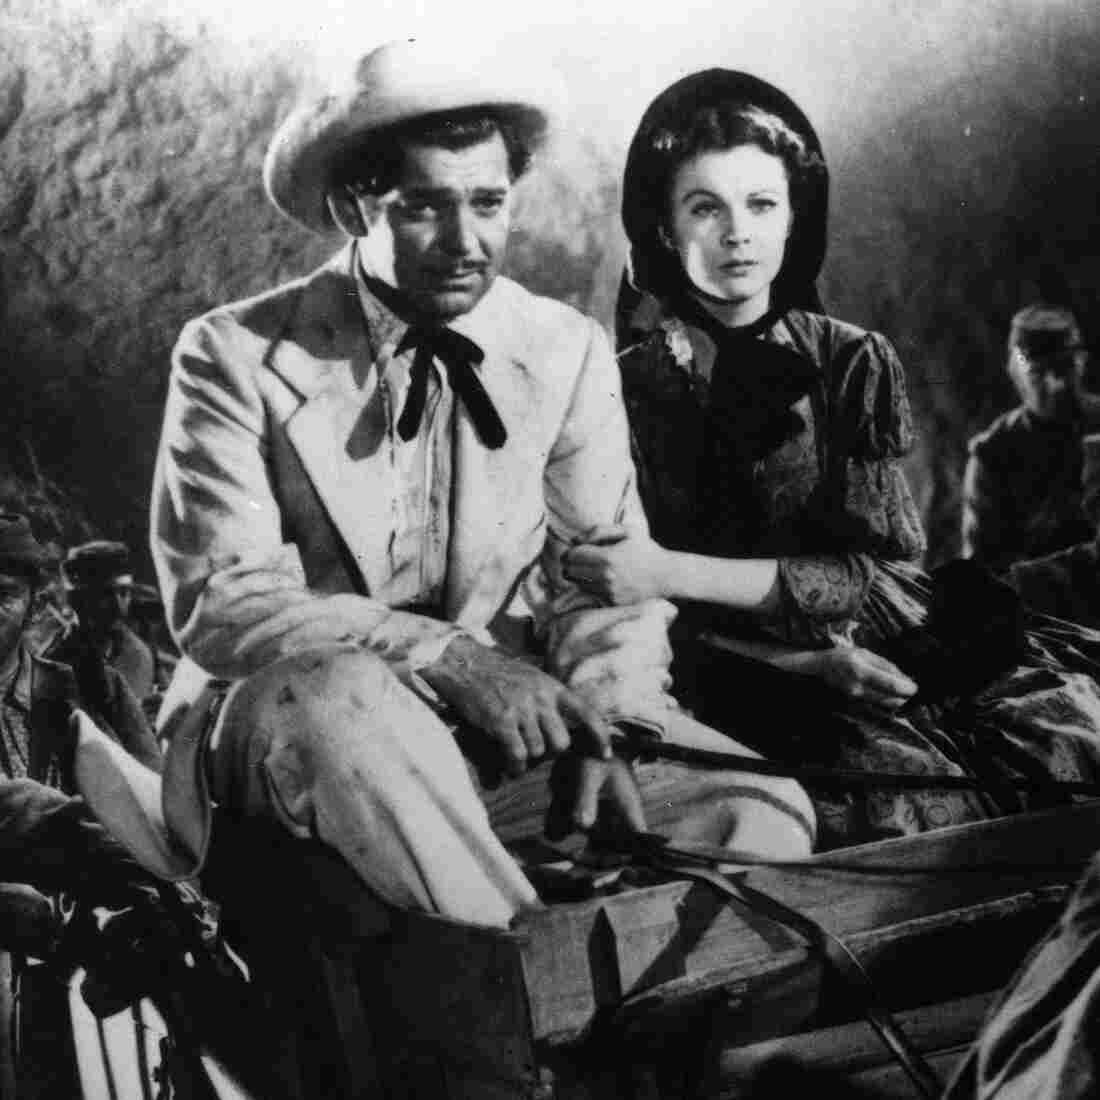 From Casting To Cutting The N-Word, The Making Of 'Gone With The Wind'